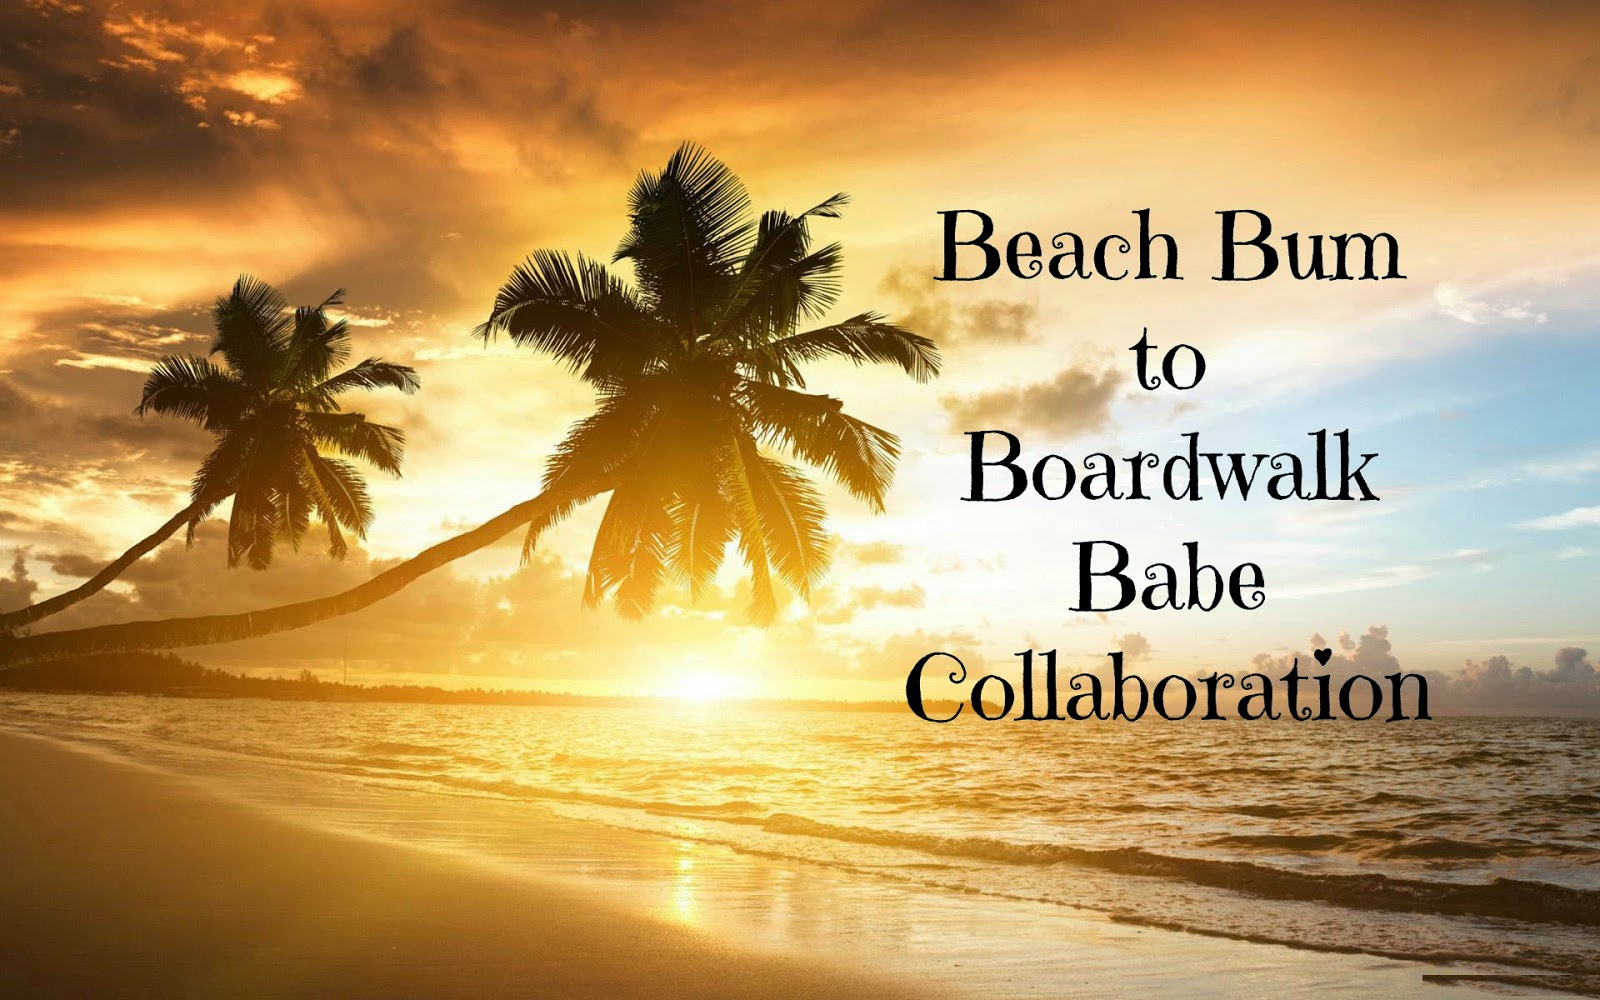 http://chrysalisglam101.blogspot.com/2014/07/beach-bum-to-boardwalk-babe.html